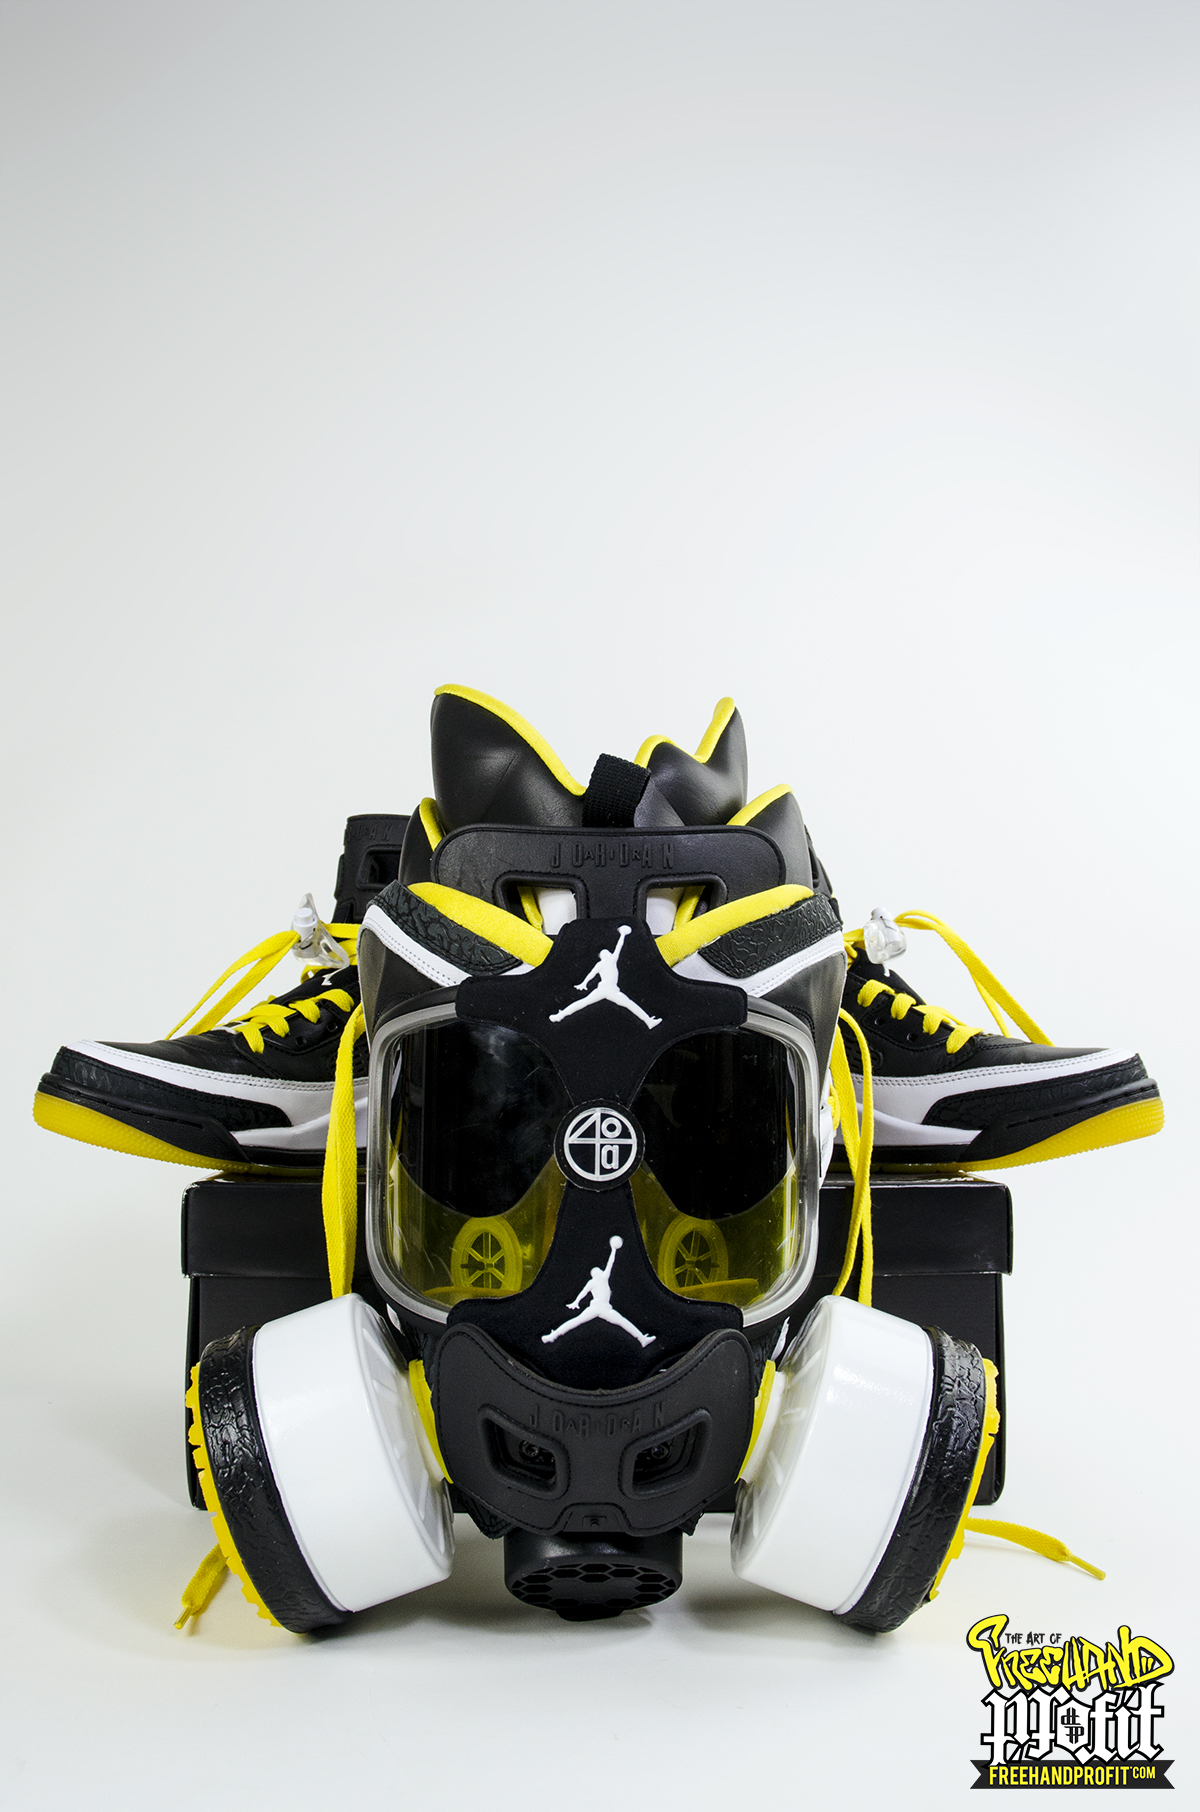 newest 11490 70858 A Tribute to the Crew known as Wu: 3 New Sneaker Masks by ...